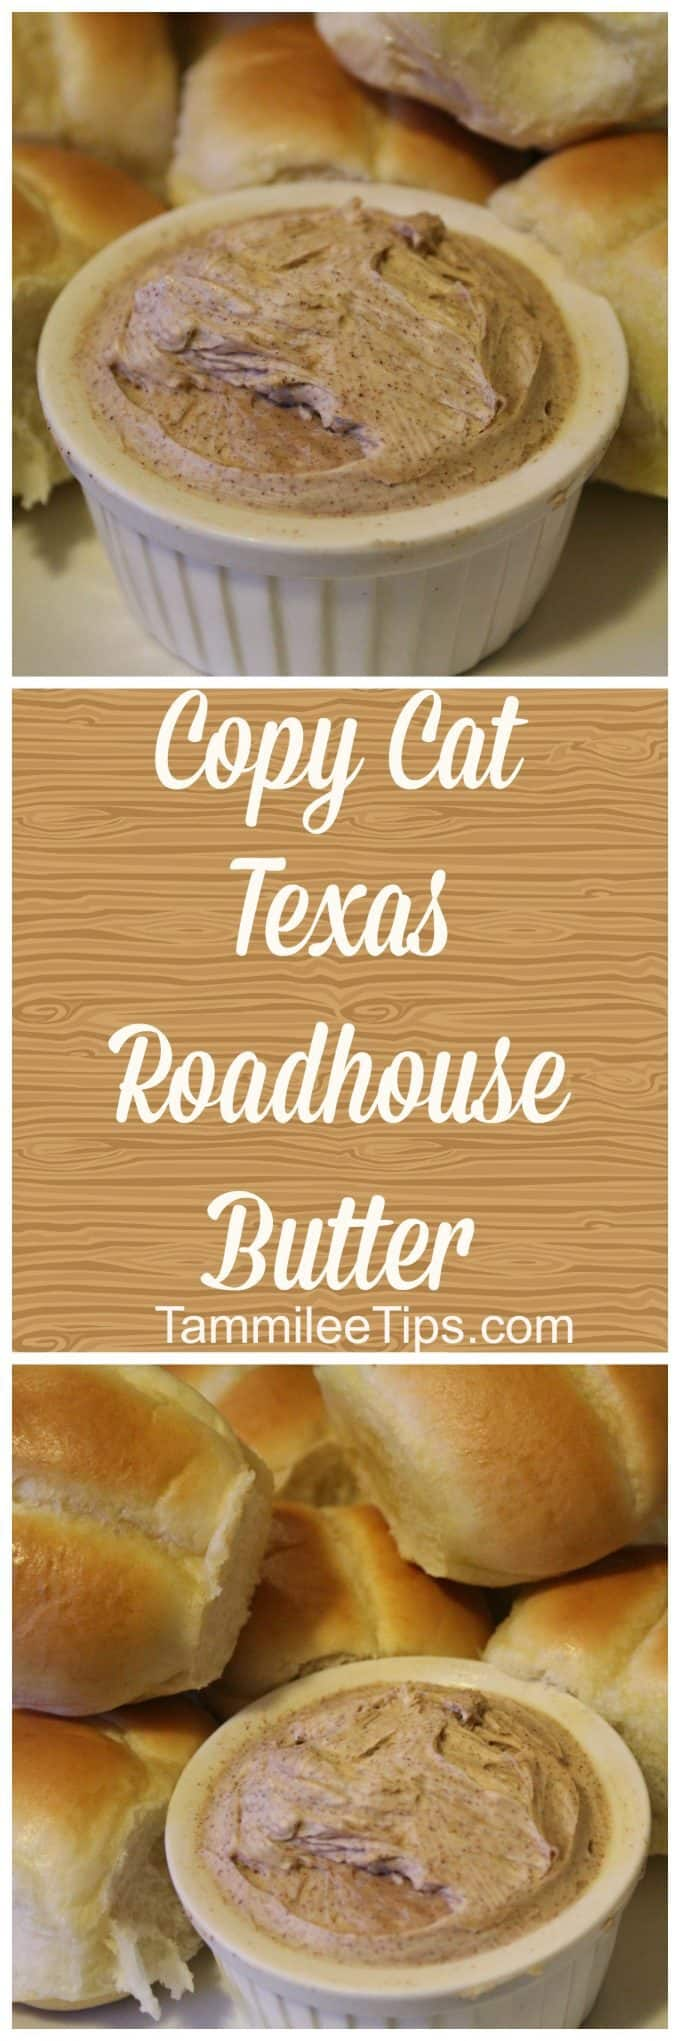 How to make copy cat Texas Roadhouse Butter at home! This copycat recipe is so easy to make. Pair with rolls for a simple family meals!